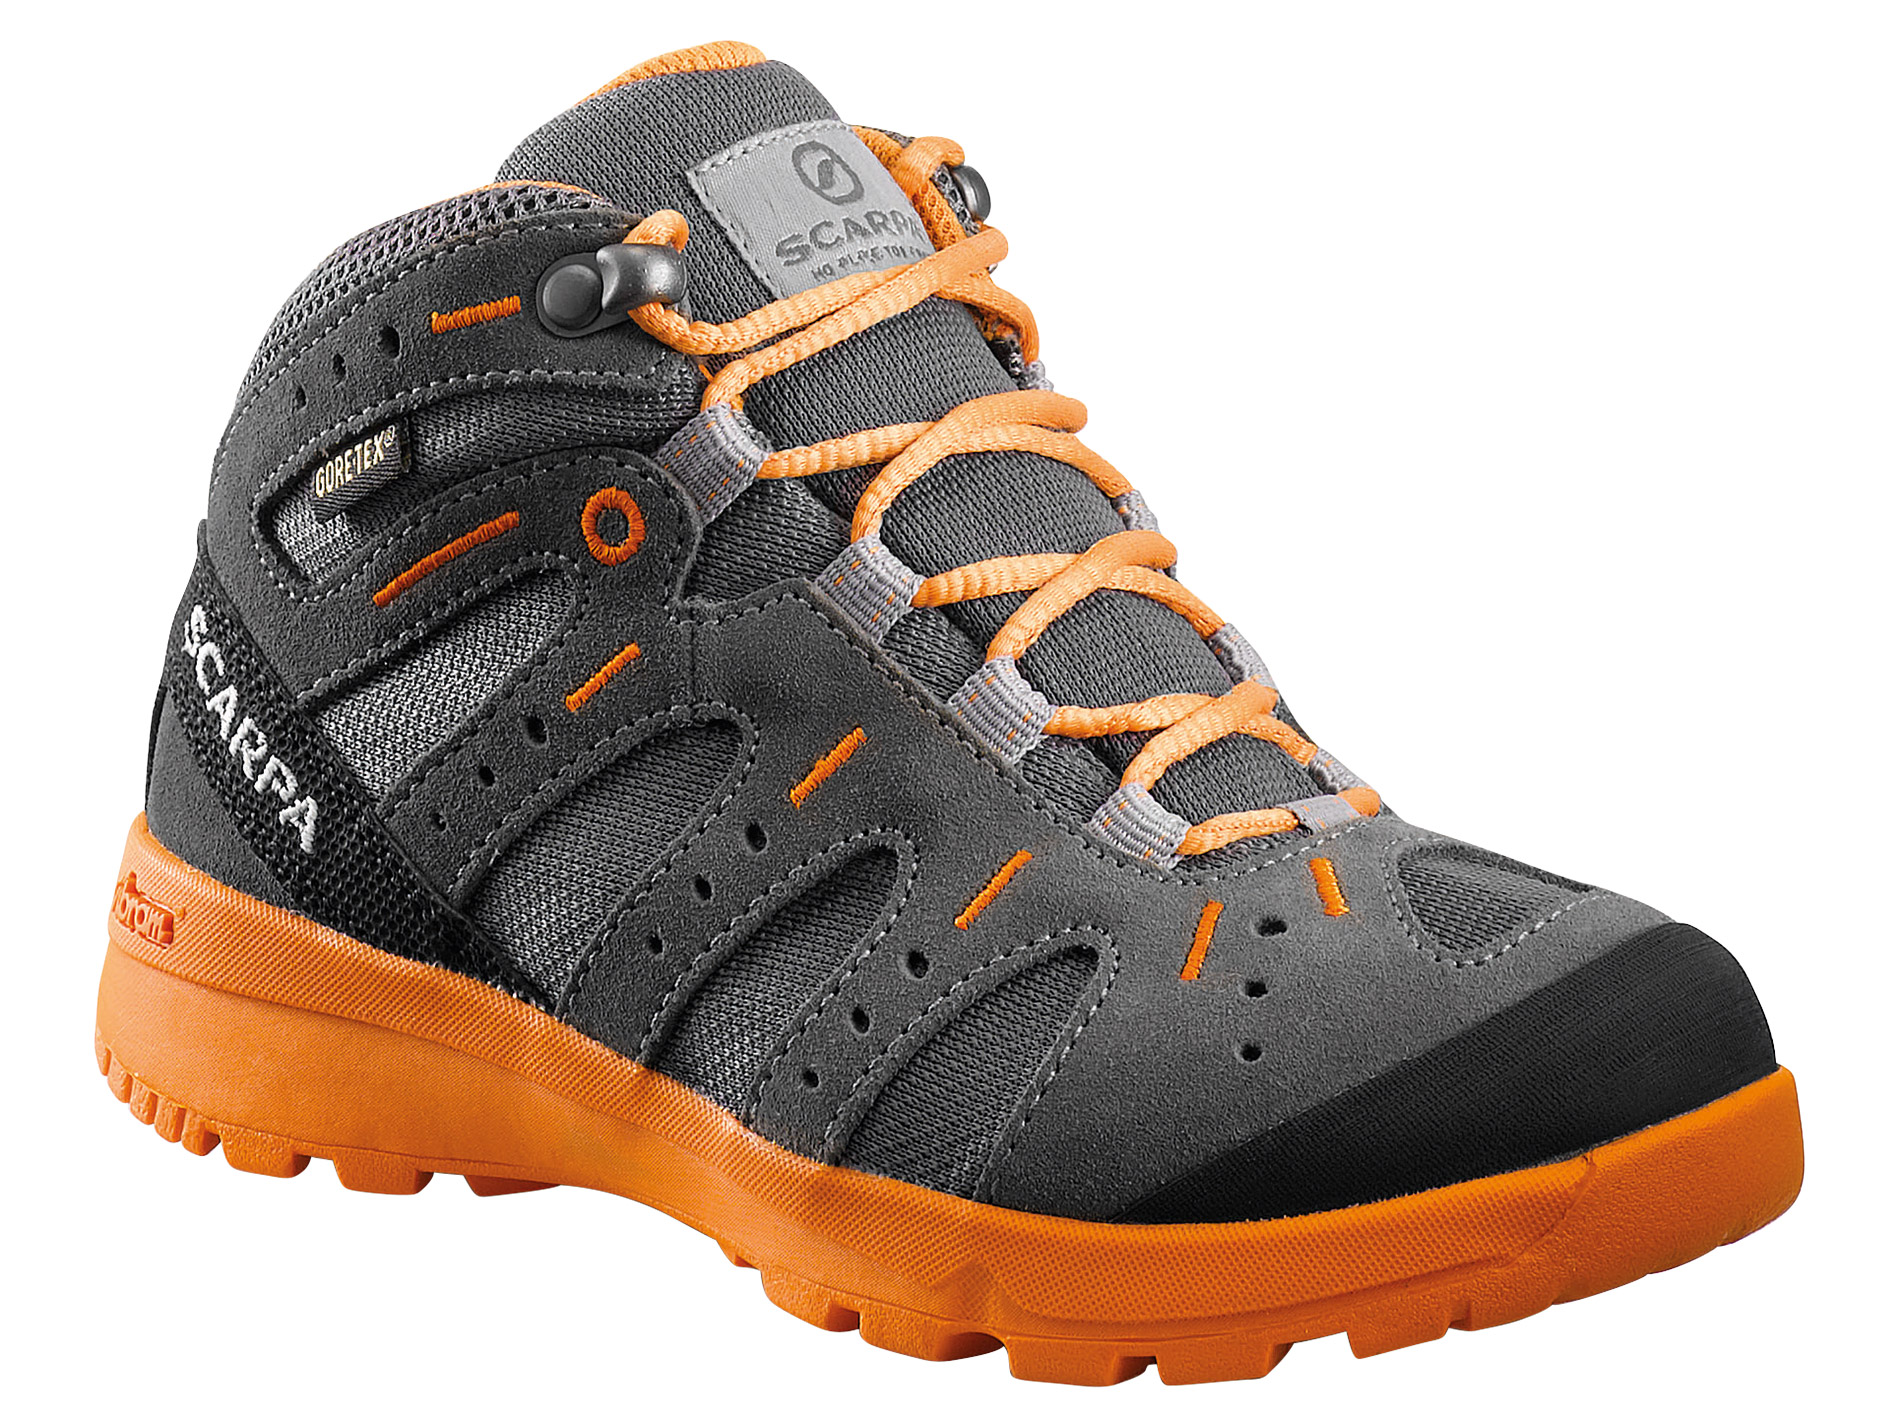 Scarpa Lupo Mid GTX 35 Grey Orange-30